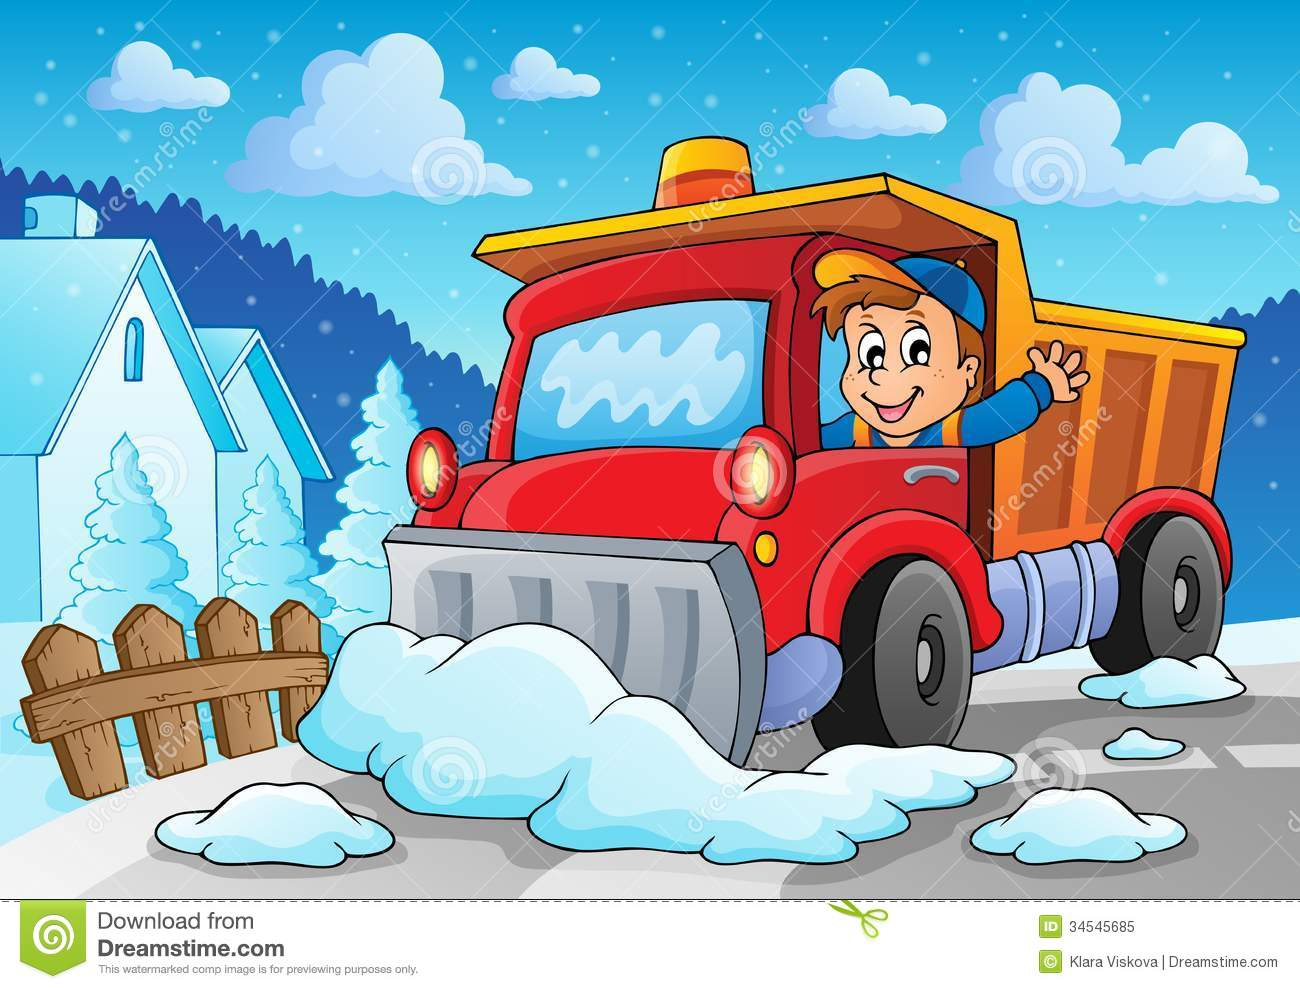 Snow Plough Car >> Snow Plough Theme Image 2 Royalty Free Stock Photo - Image: 34545685